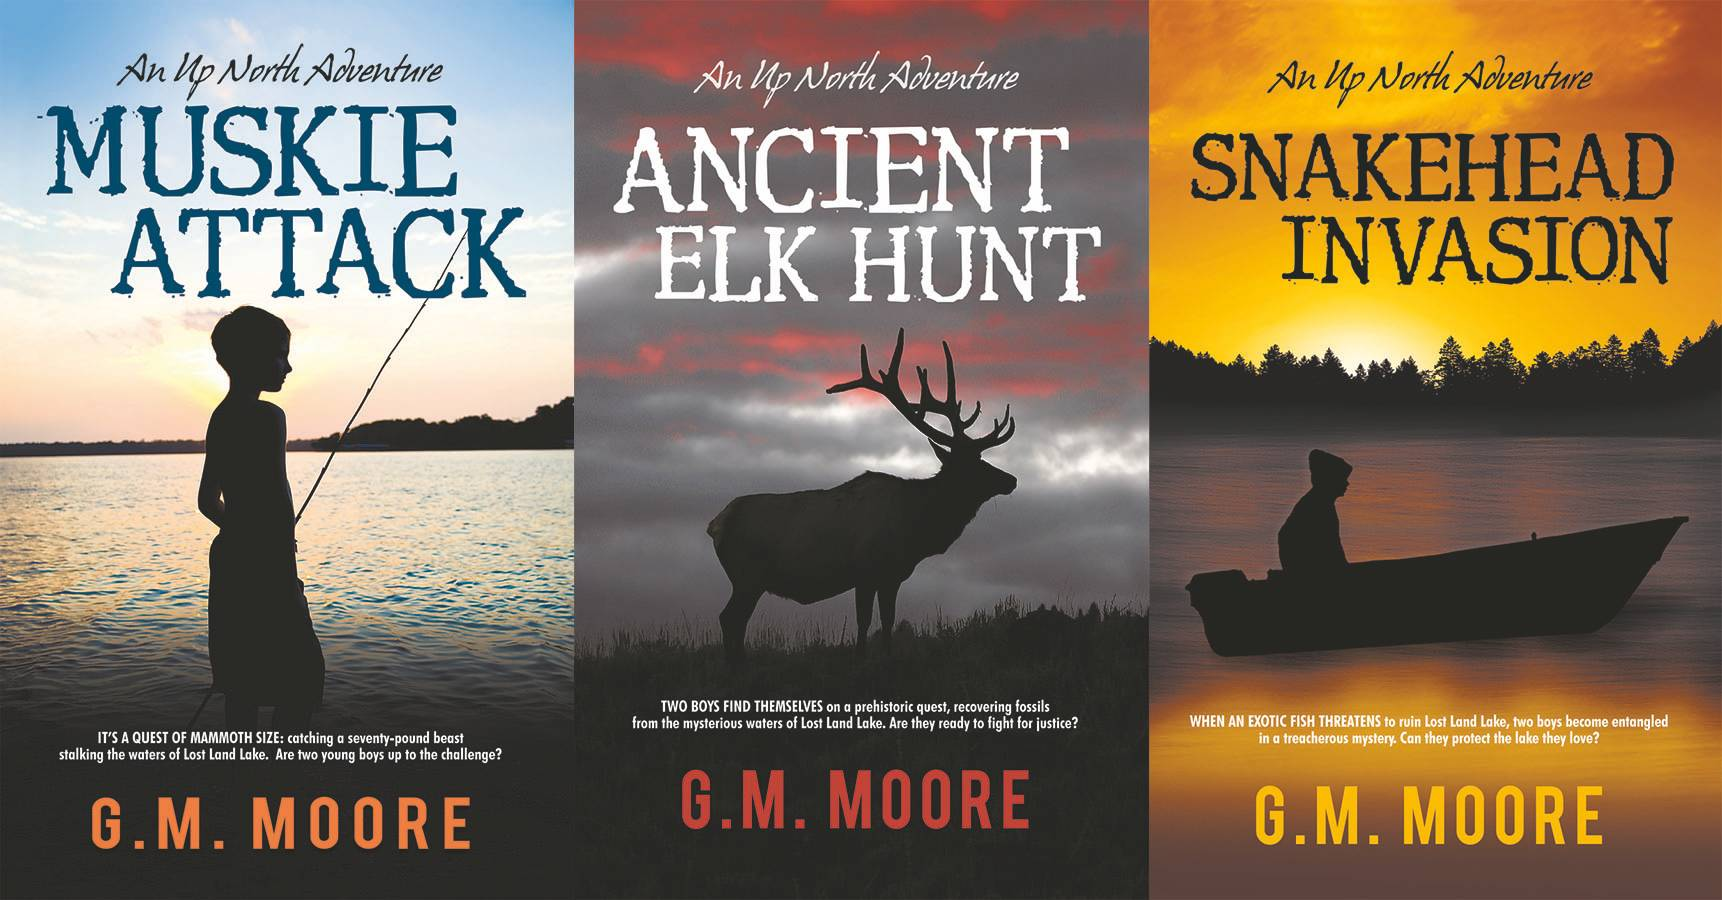 The Up North Adventure series by G.M. Moore targets ages 9-12.